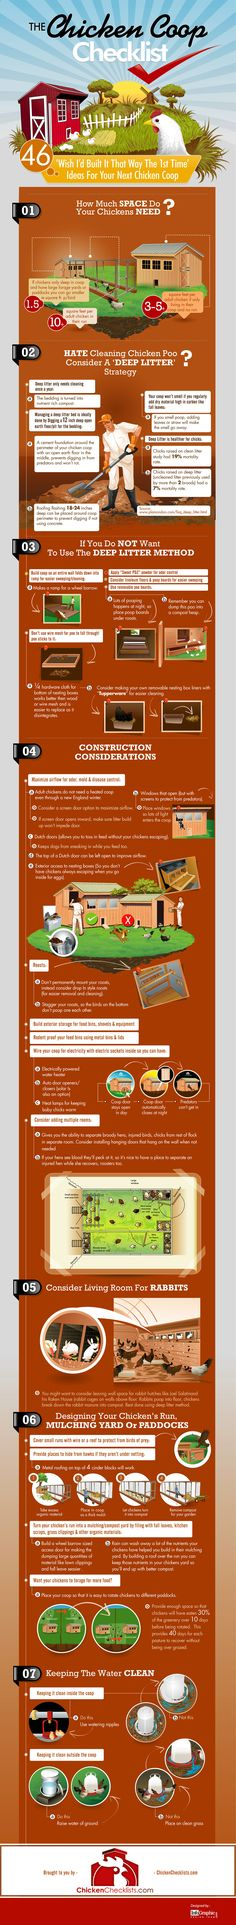 the chicken coop checklist.... great suggestions!